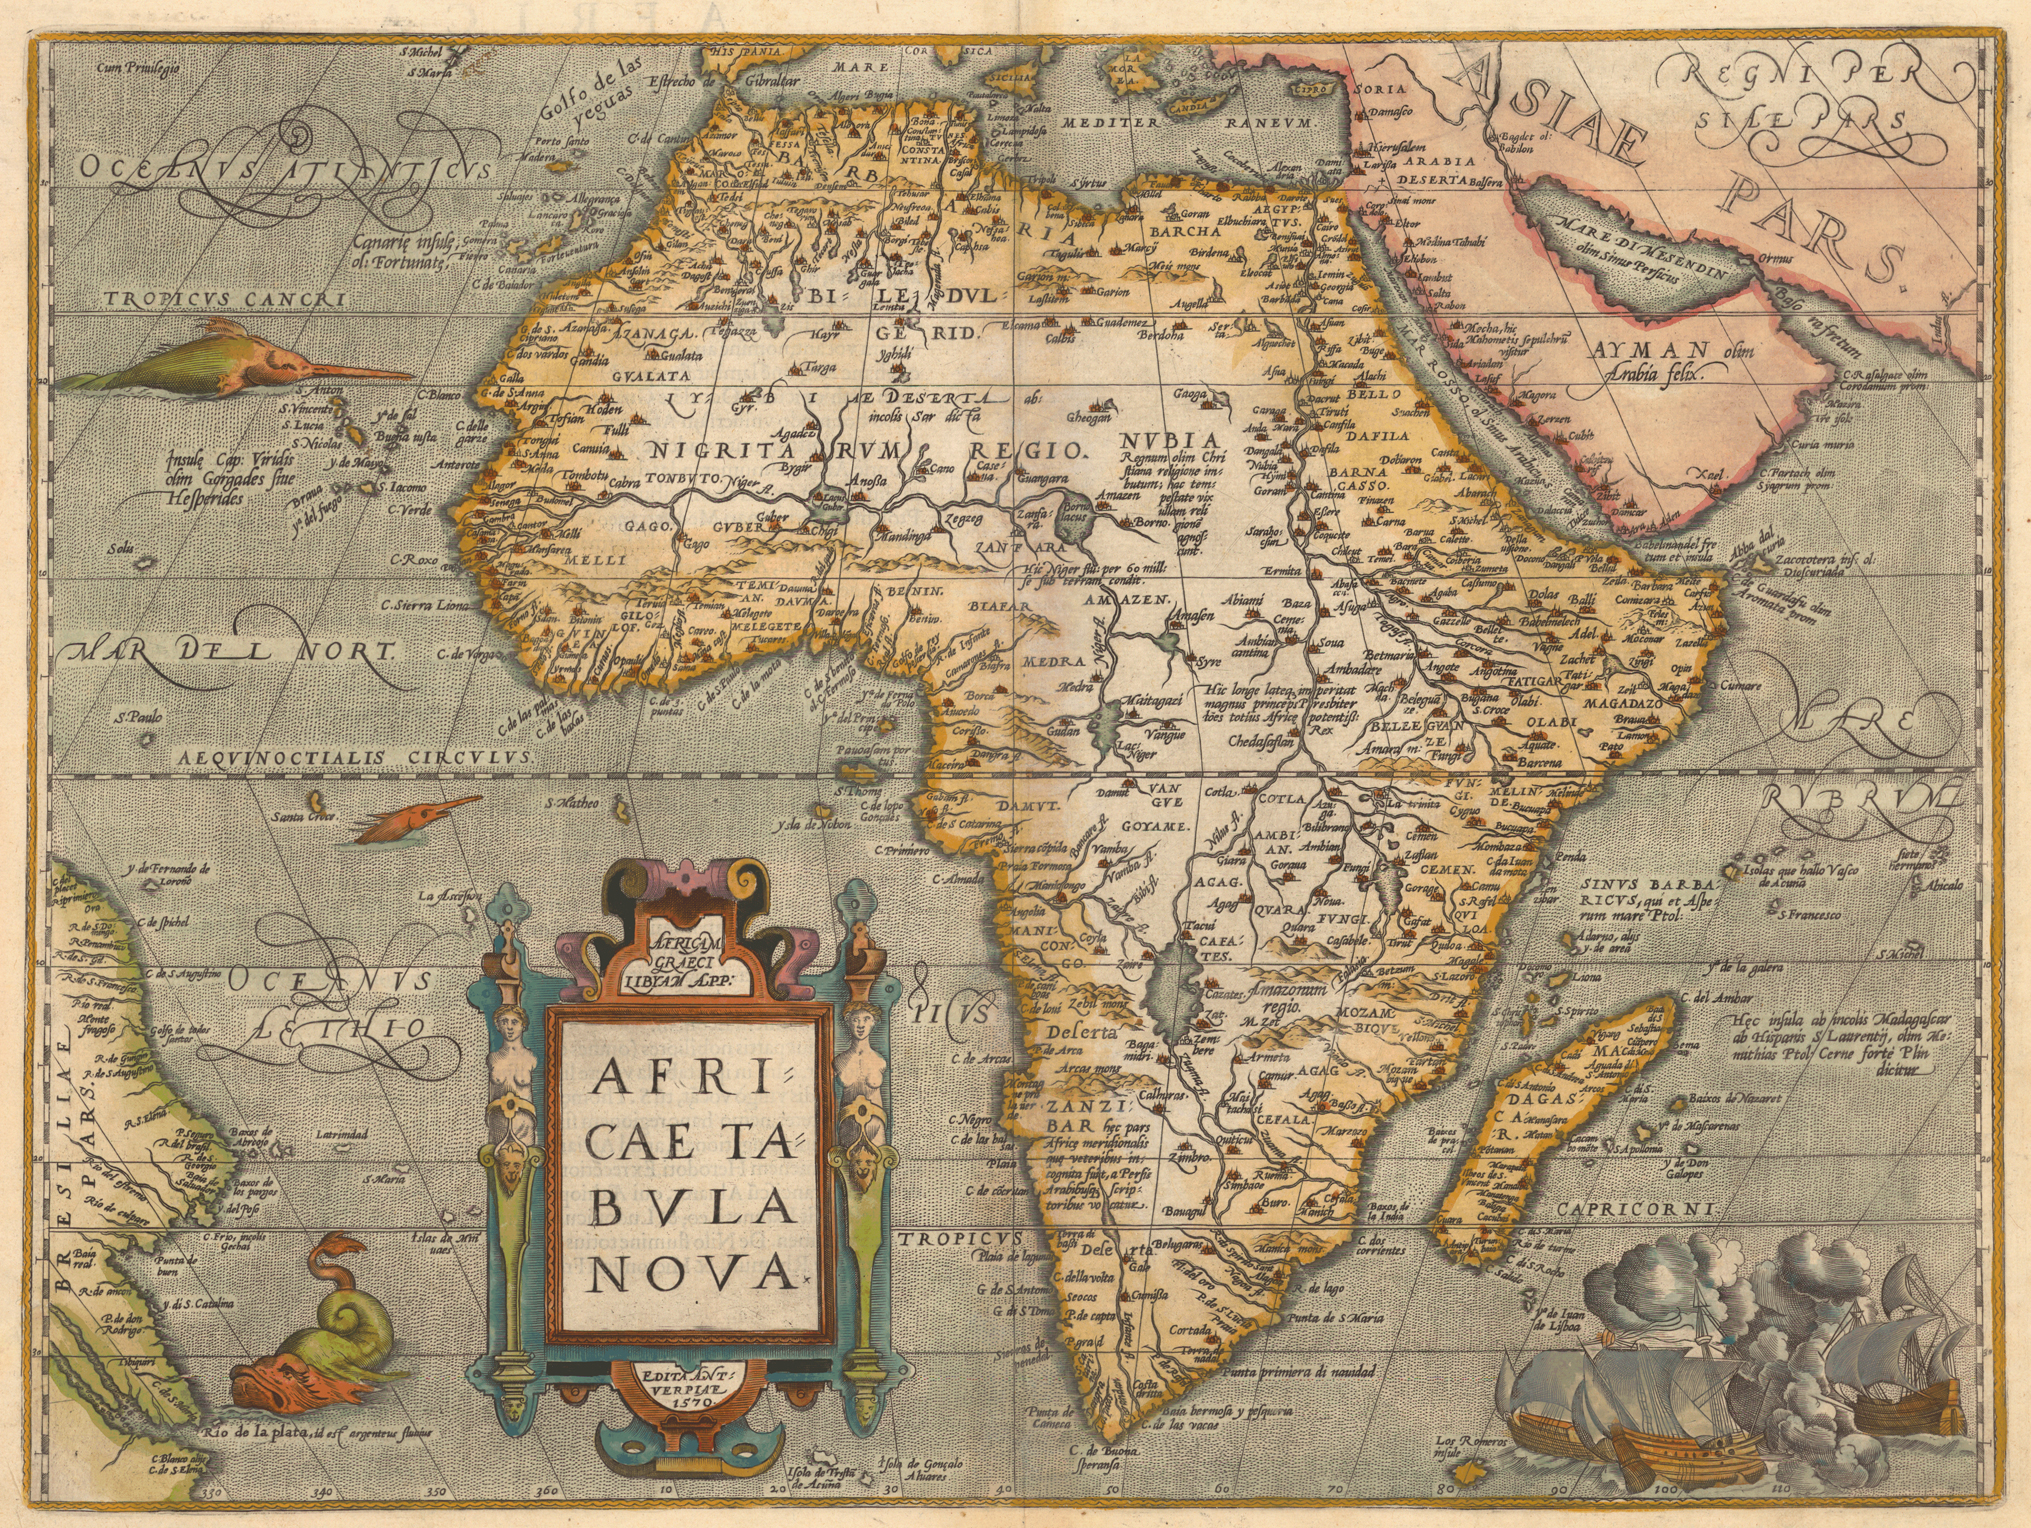 Oldest Known World Map.Biafra Maps Biafran Org